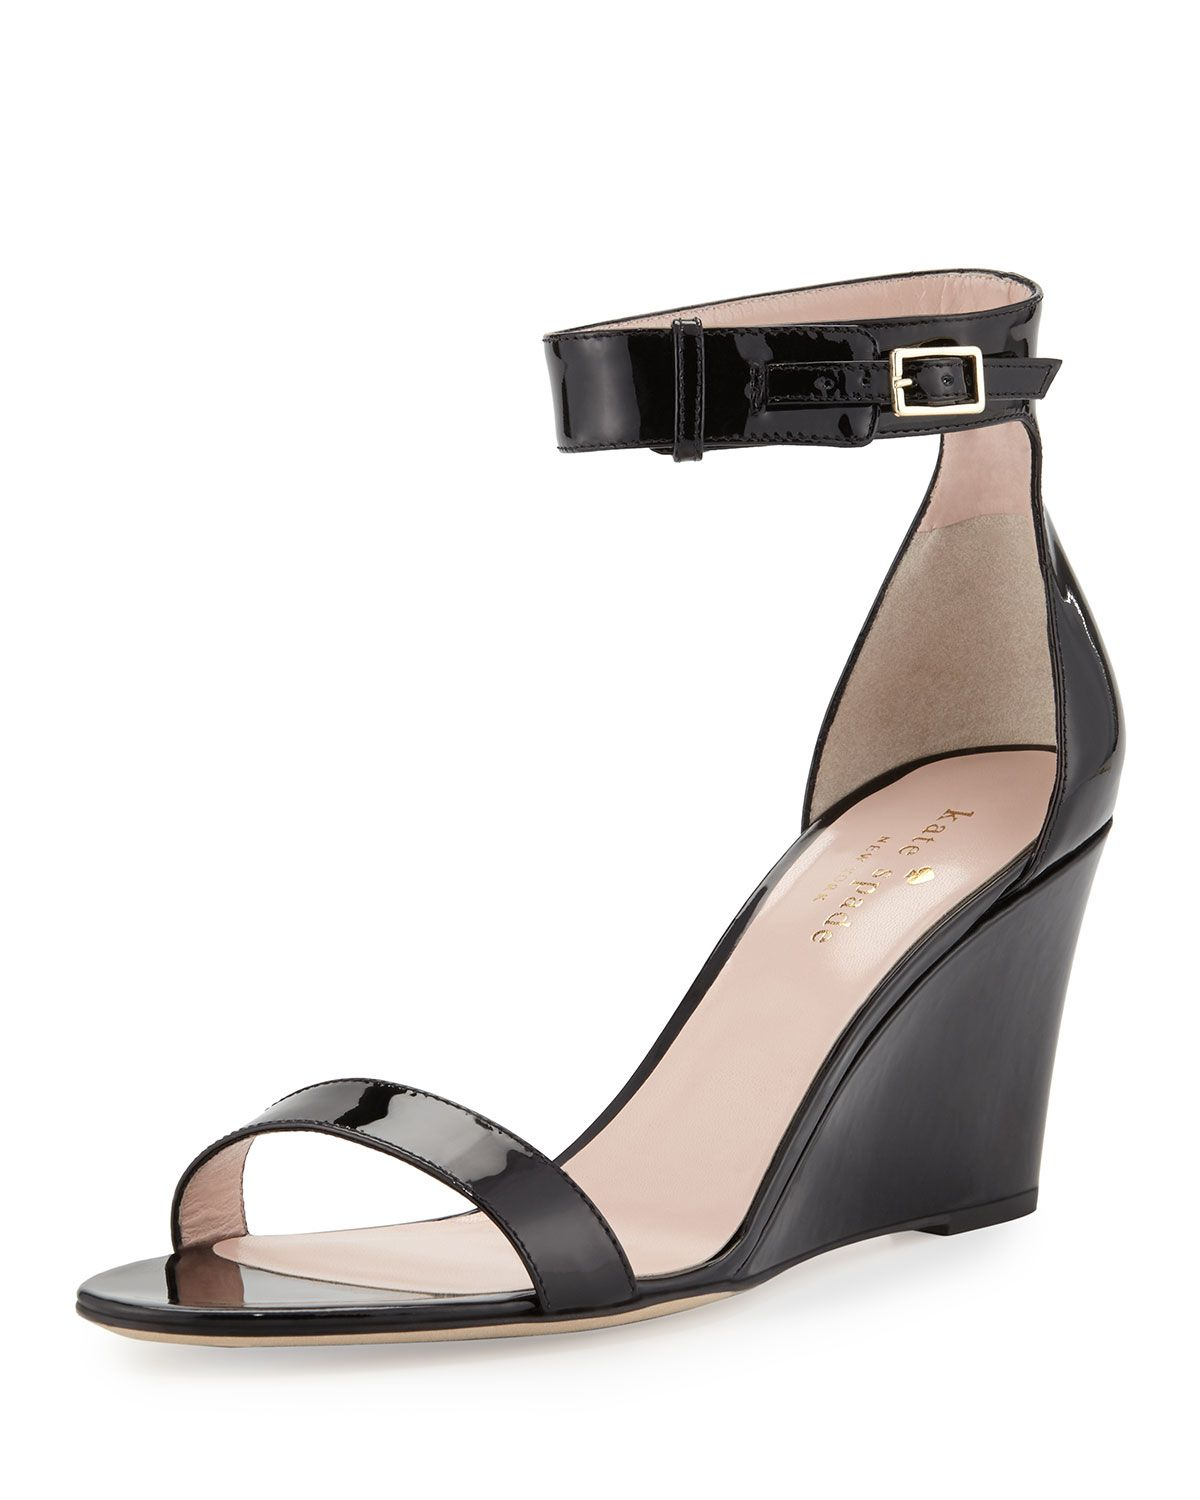 Black sandals with straps - Ronia Naked Wedge Sandal Black Kate Spade New York